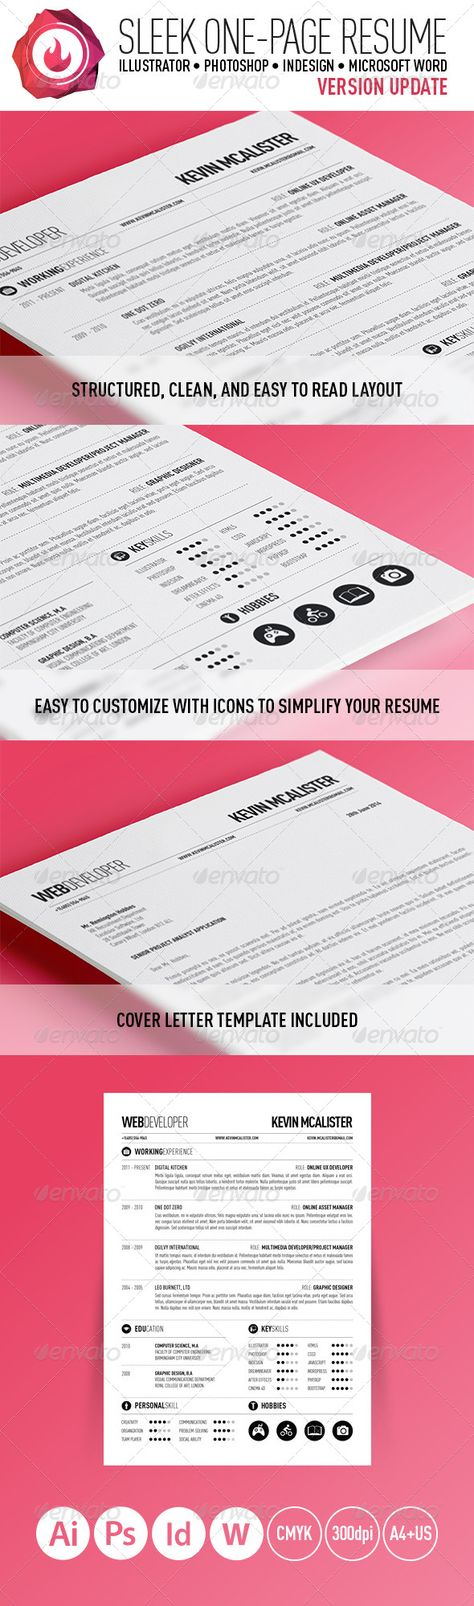 Sleek One-Page Resume Resume cv, Psd templates and Cv design - single page resume